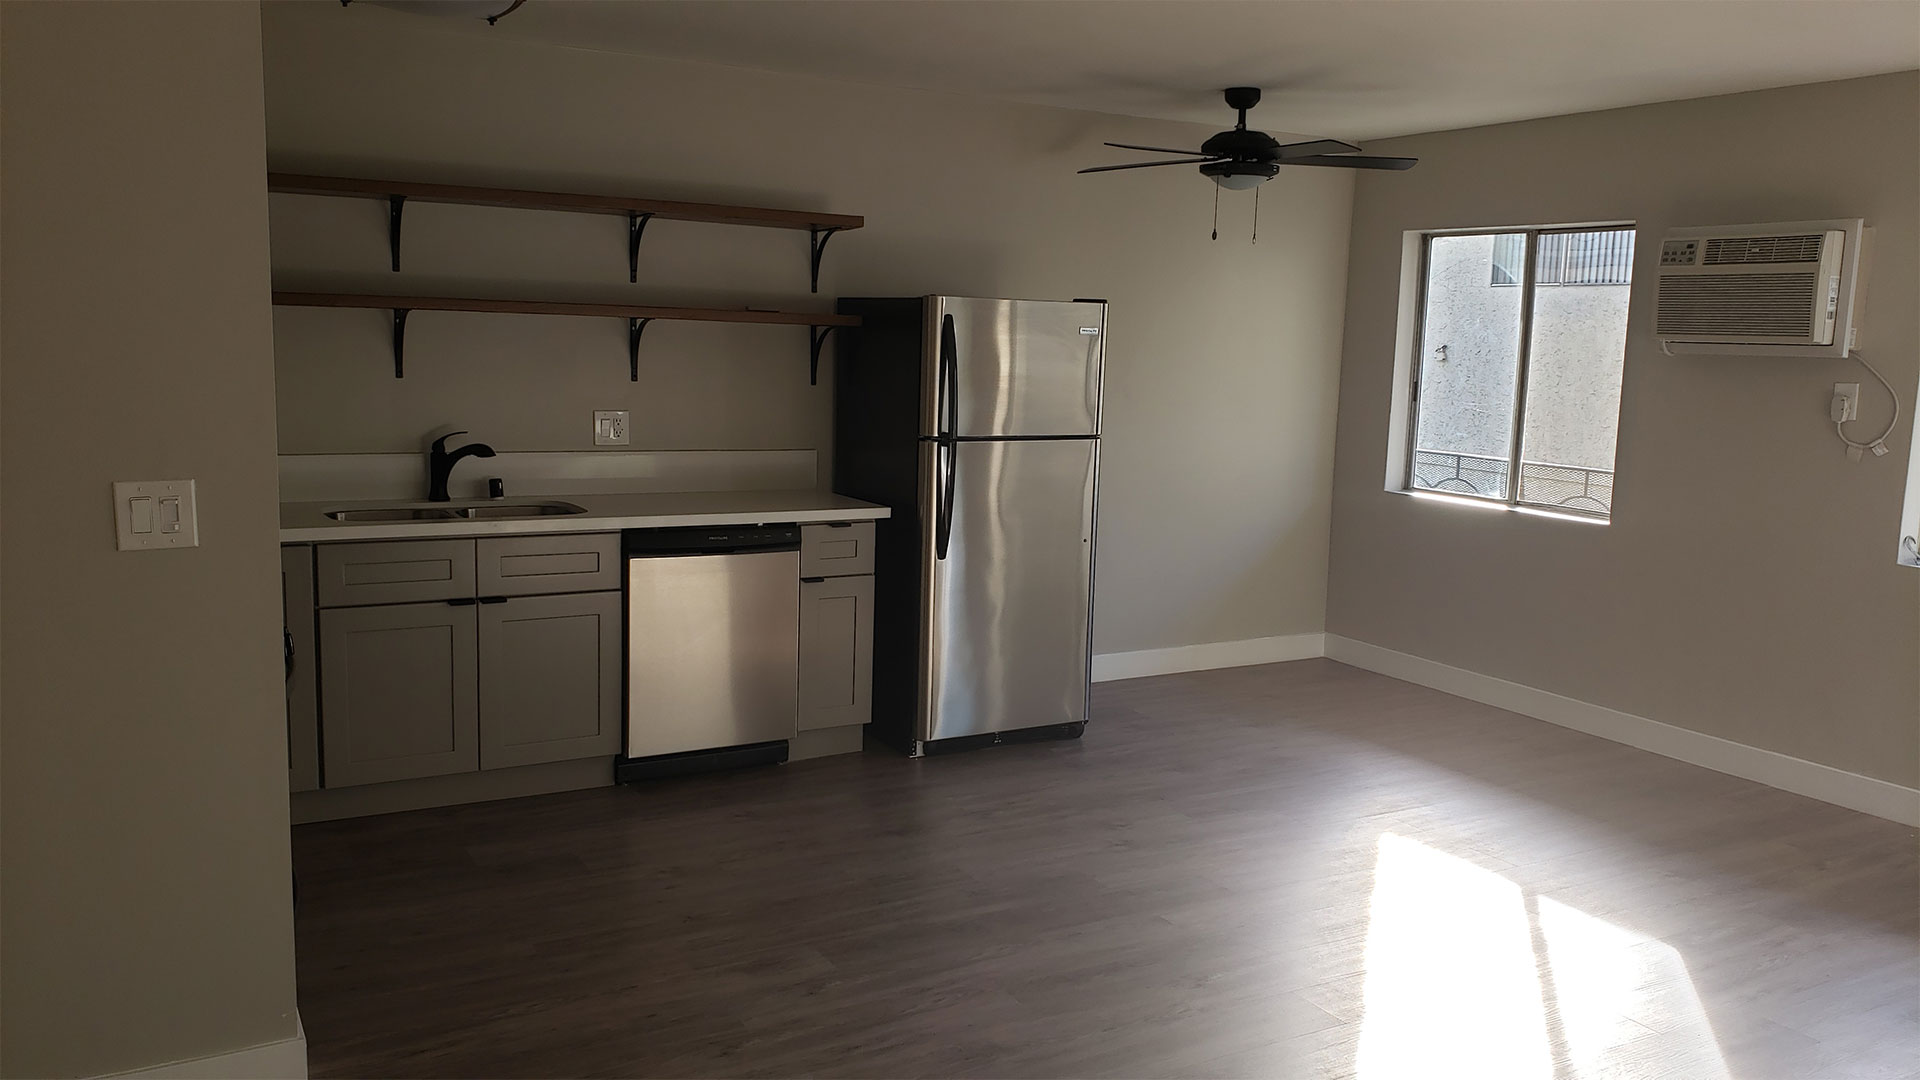 Kitchen Area With Ceiling Fan, Hardwood Flooring, Stainless Steel Appliances at Wilson Apartments in Glendale, CA